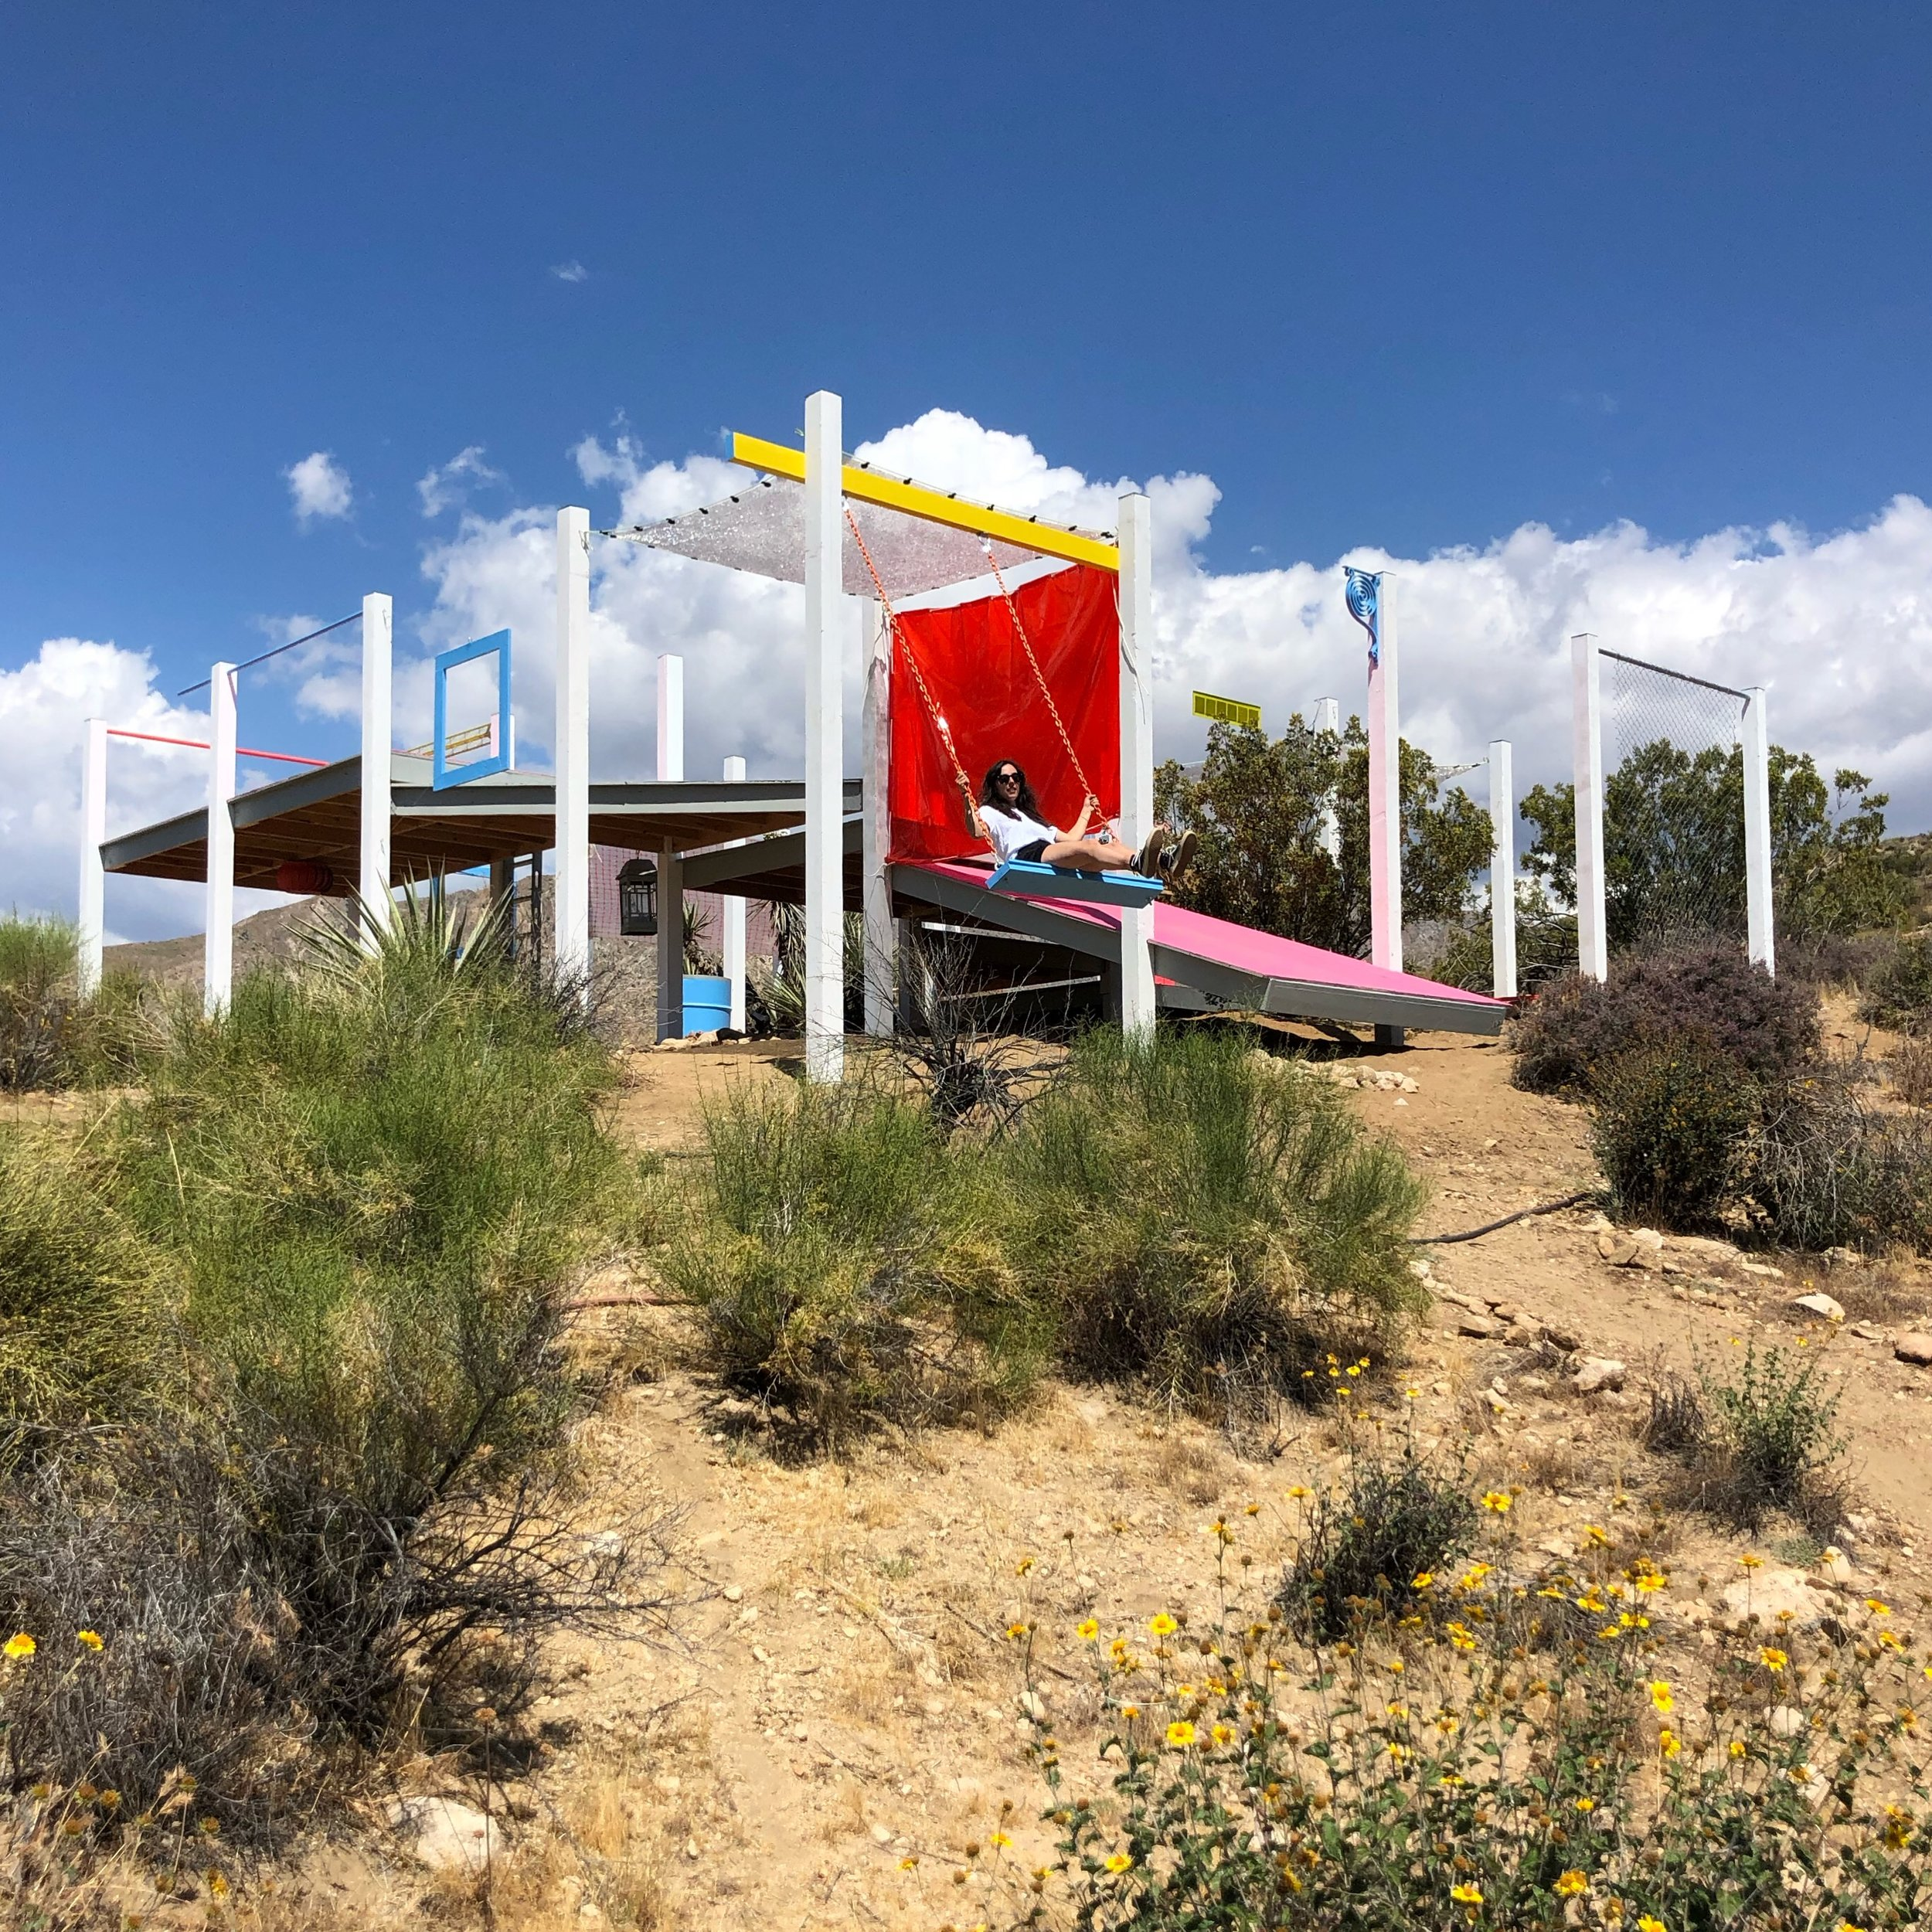 Office Kovacs and Kyle May Architect, DOTS, A Camping Pavilion, Morongo Valley. California 2019.JPG